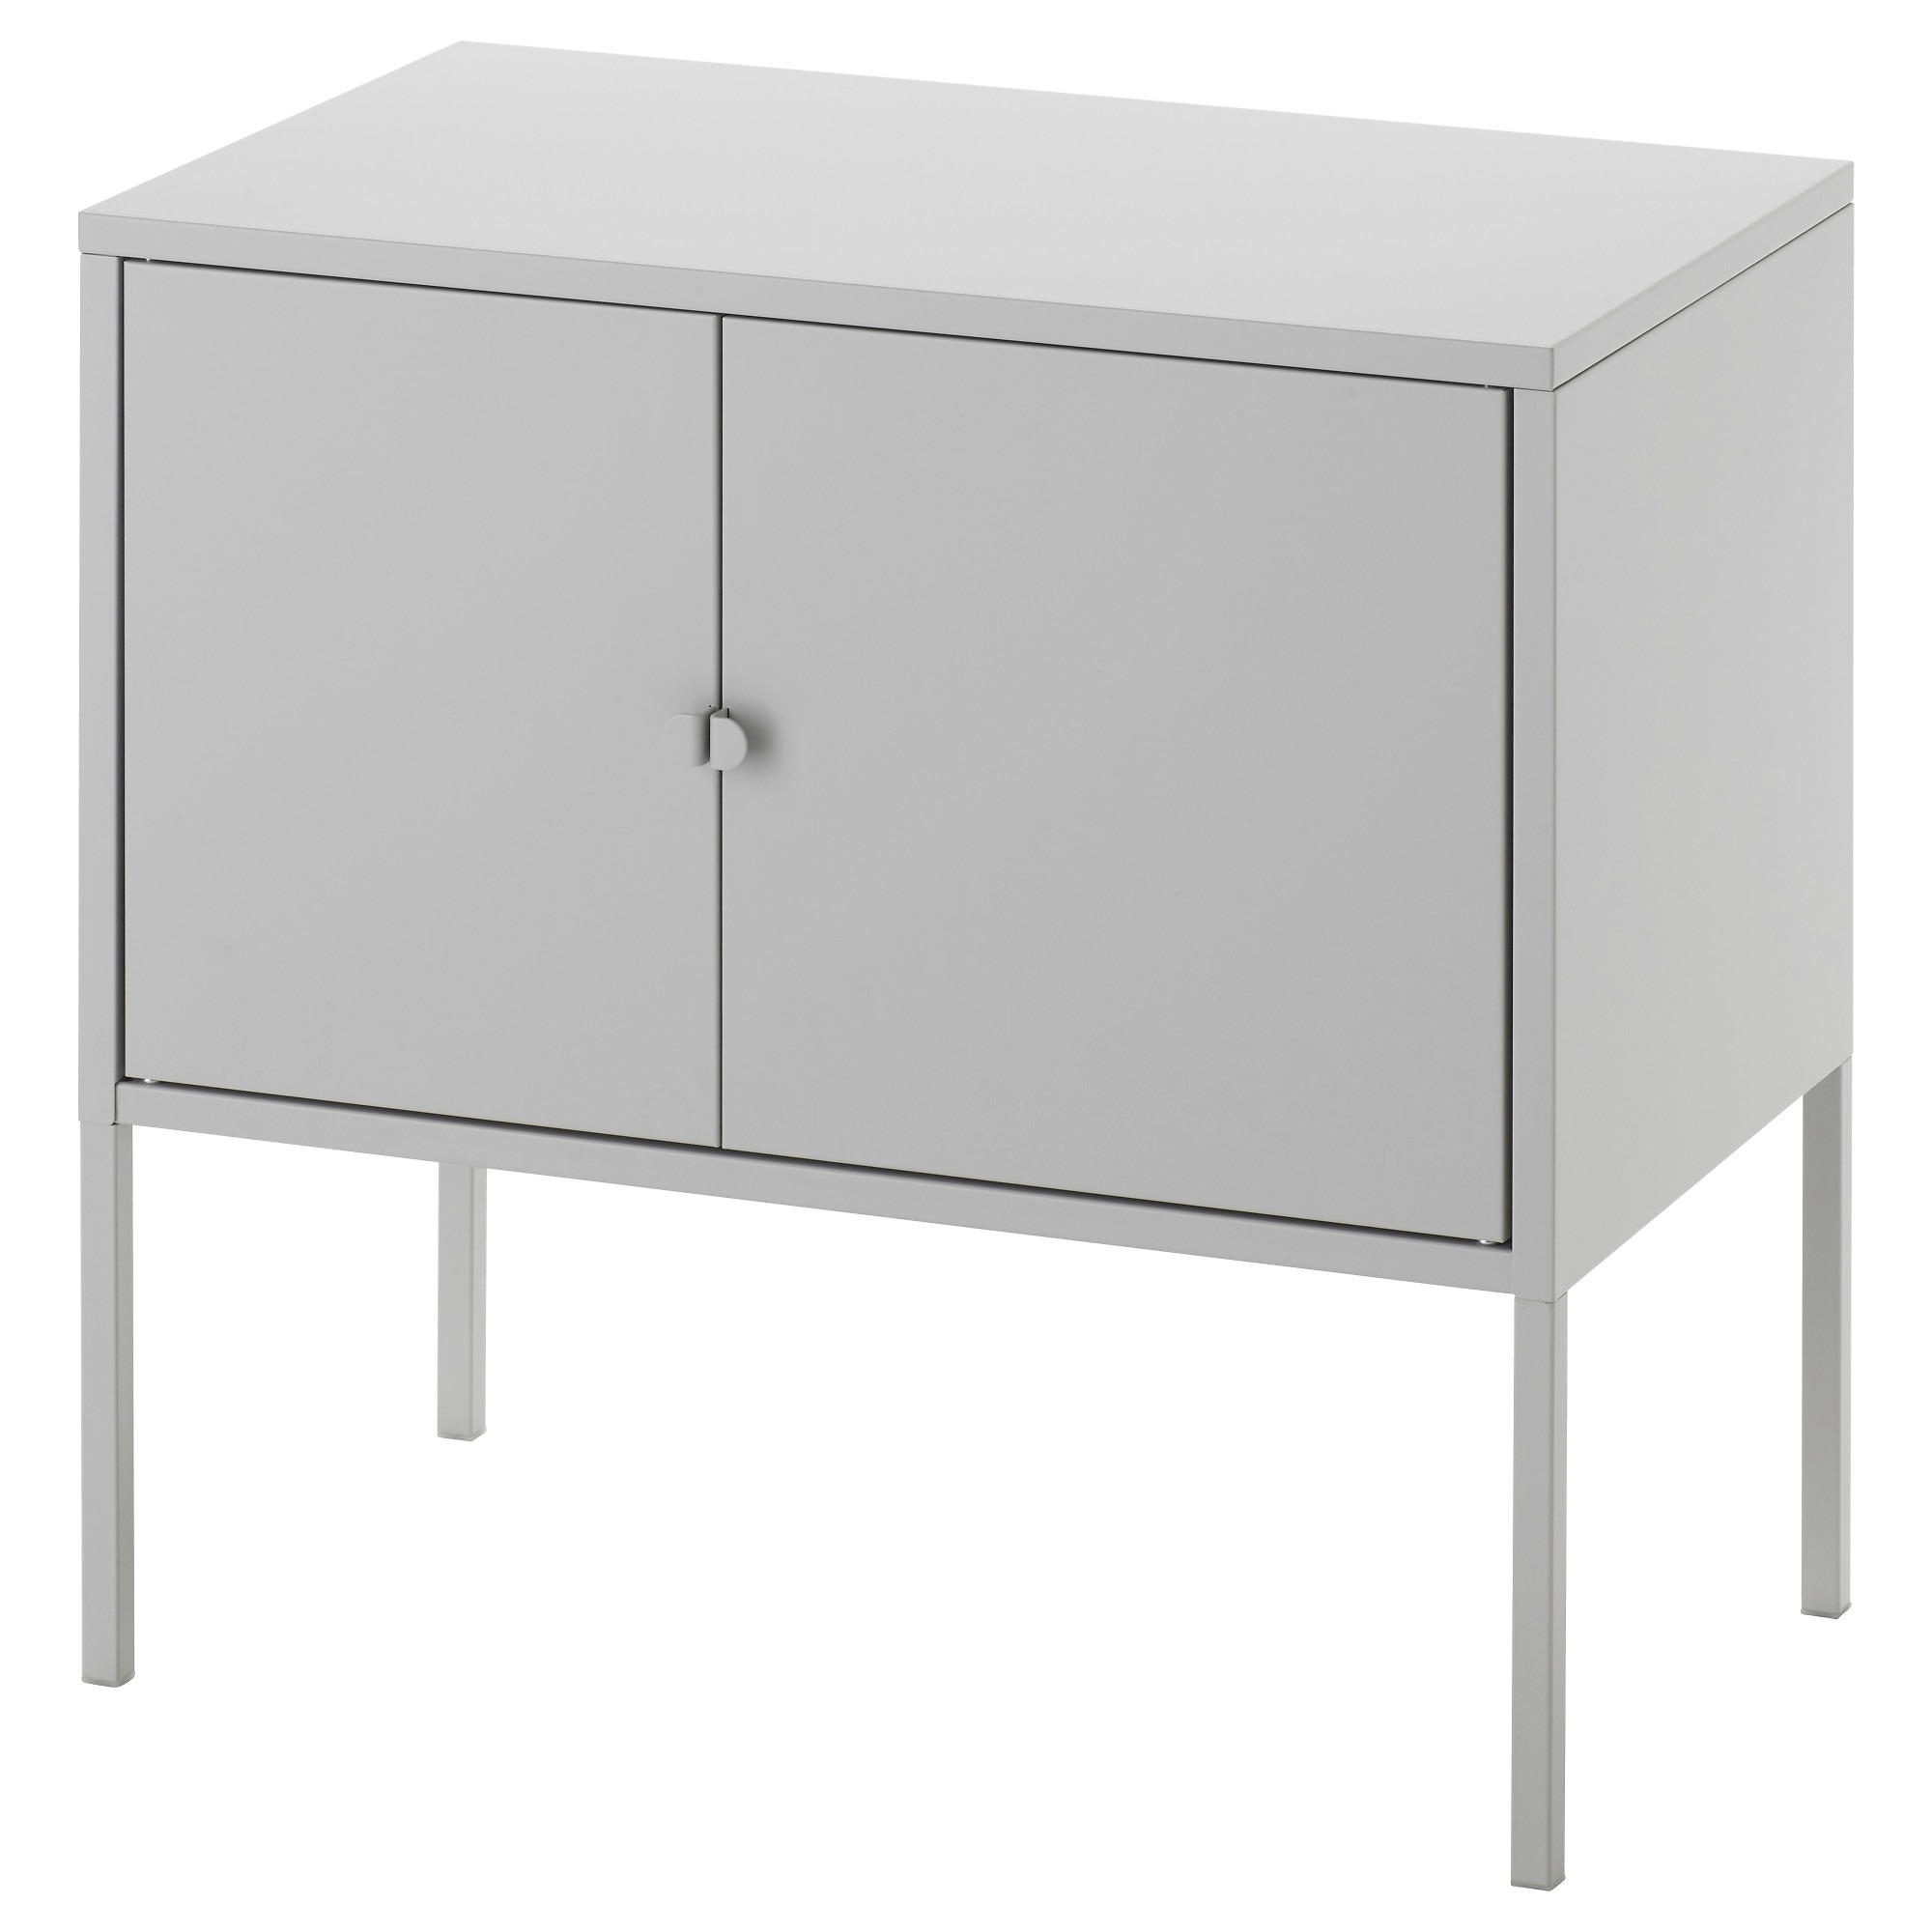 Interior Ikea White Cabinet display cabinets cupboards ikea lixhult cabinet